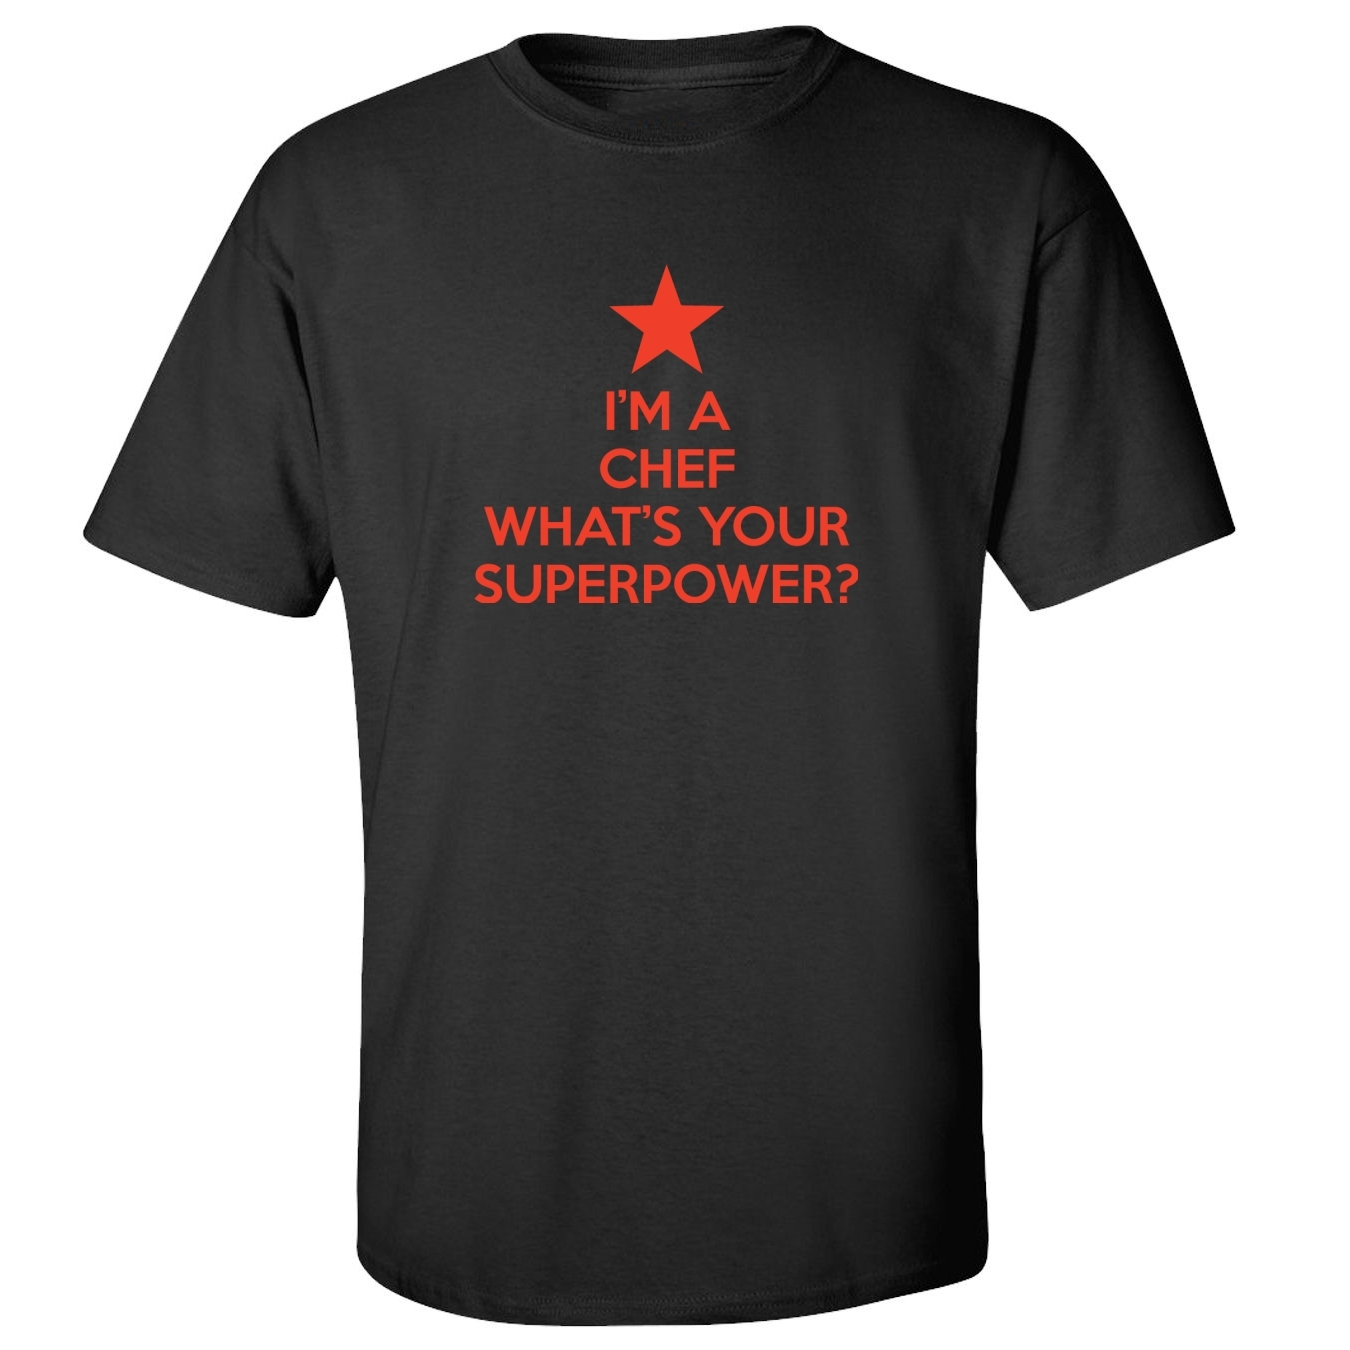 Mashed Clothing I'm Chef Your Superpower? Adult T-Shirt at Sears.com